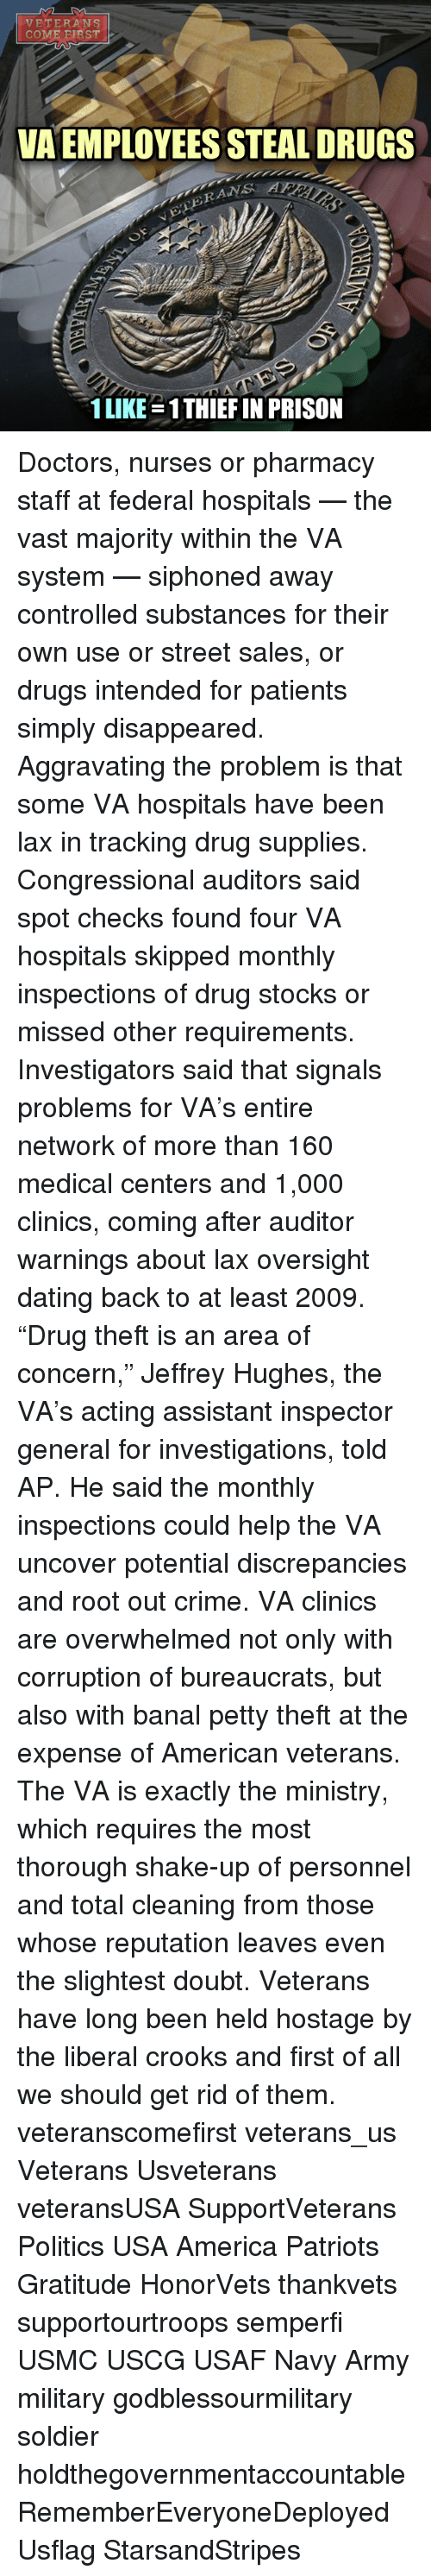 "Crime, Memes, and Soldiers: VETERANS  COME RST  VA EMPLOYEES STEALDRUGS  RAWAS  1 LIKE 1THIEFIN PRISON Doctors, nurses or pharmacy staff at federal hospitals — the vast majority within the VA system — siphoned away controlled substances for their own use or street sales, or drugs intended for patients simply disappeared. Aggravating the problem is that some VA hospitals have been lax in tracking drug supplies. Congressional auditors said spot checks found four VA hospitals skipped monthly inspections of drug stocks or missed other requirements. Investigators said that signals problems for VA's entire network of more than 160 medical centers and 1,000 clinics, coming after auditor warnings about lax oversight dating back to at least 2009. ""Drug theft is an area of concern,"" Jeffrey Hughes, the VA's acting assistant inspector general for investigations, told AP. He said the monthly inspections could help the VA uncover potential discrepancies and root out crime. VA clinics are overwhelmed not only with corruption of bureaucrats, but also with banal petty theft at the expense of American veterans. The VA is exactly the ministry, which requires the most thorough shake-up of personnel and total cleaning from those whose reputation leaves even the slightest doubt. Veterans have long been held hostage by the liberal crooks and first of all we should get rid of them. veteranscomefirst veterans_us Veterans Usveterans veteransUSA SupportVeterans Politics USA America Patriots Gratitude HonorVets thankvets supportourtroops semperfi USMC USCG USAF Navy Army military godblessourmilitary soldier holdthegovernmentaccountable RememberEveryoneDeployed Usflag StarsandStripes"